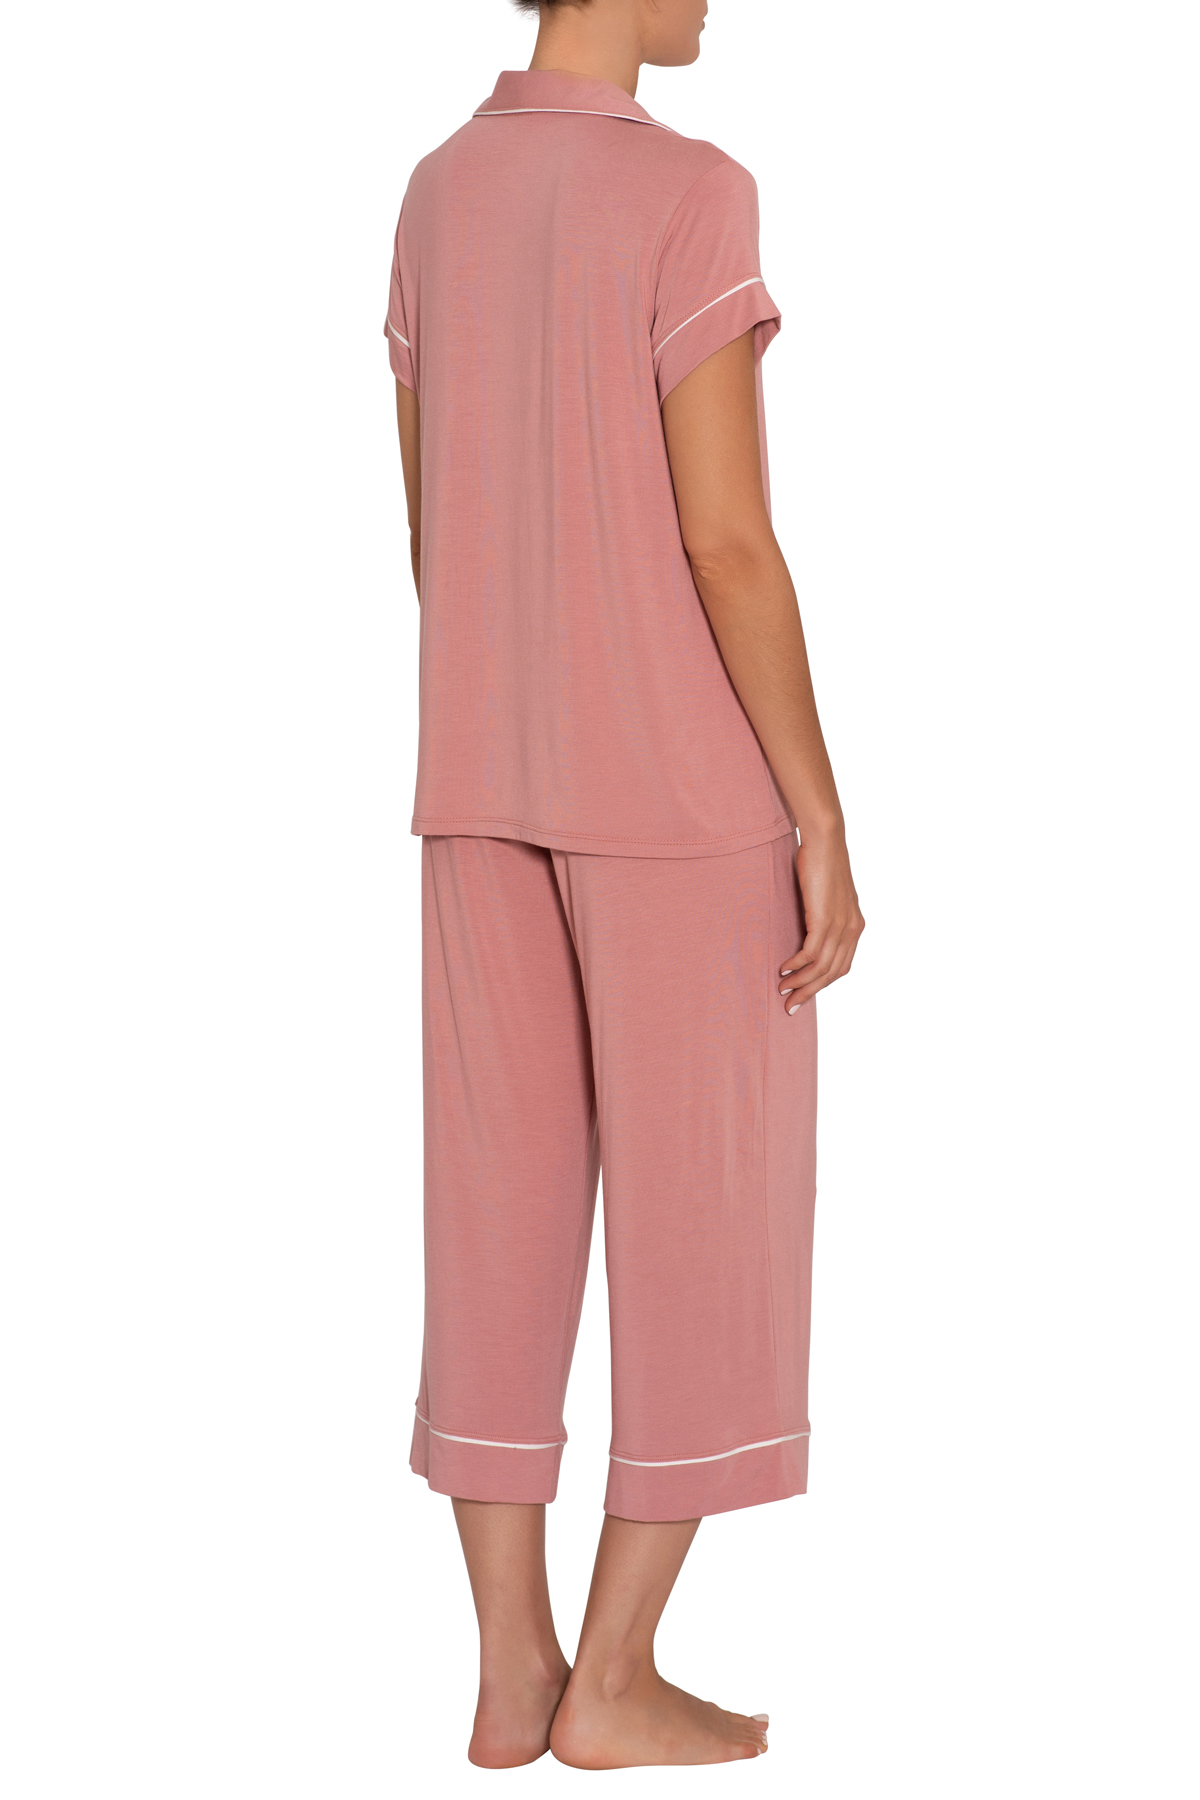 Eberjey Gisele Short Sleeve Crop PJ Set